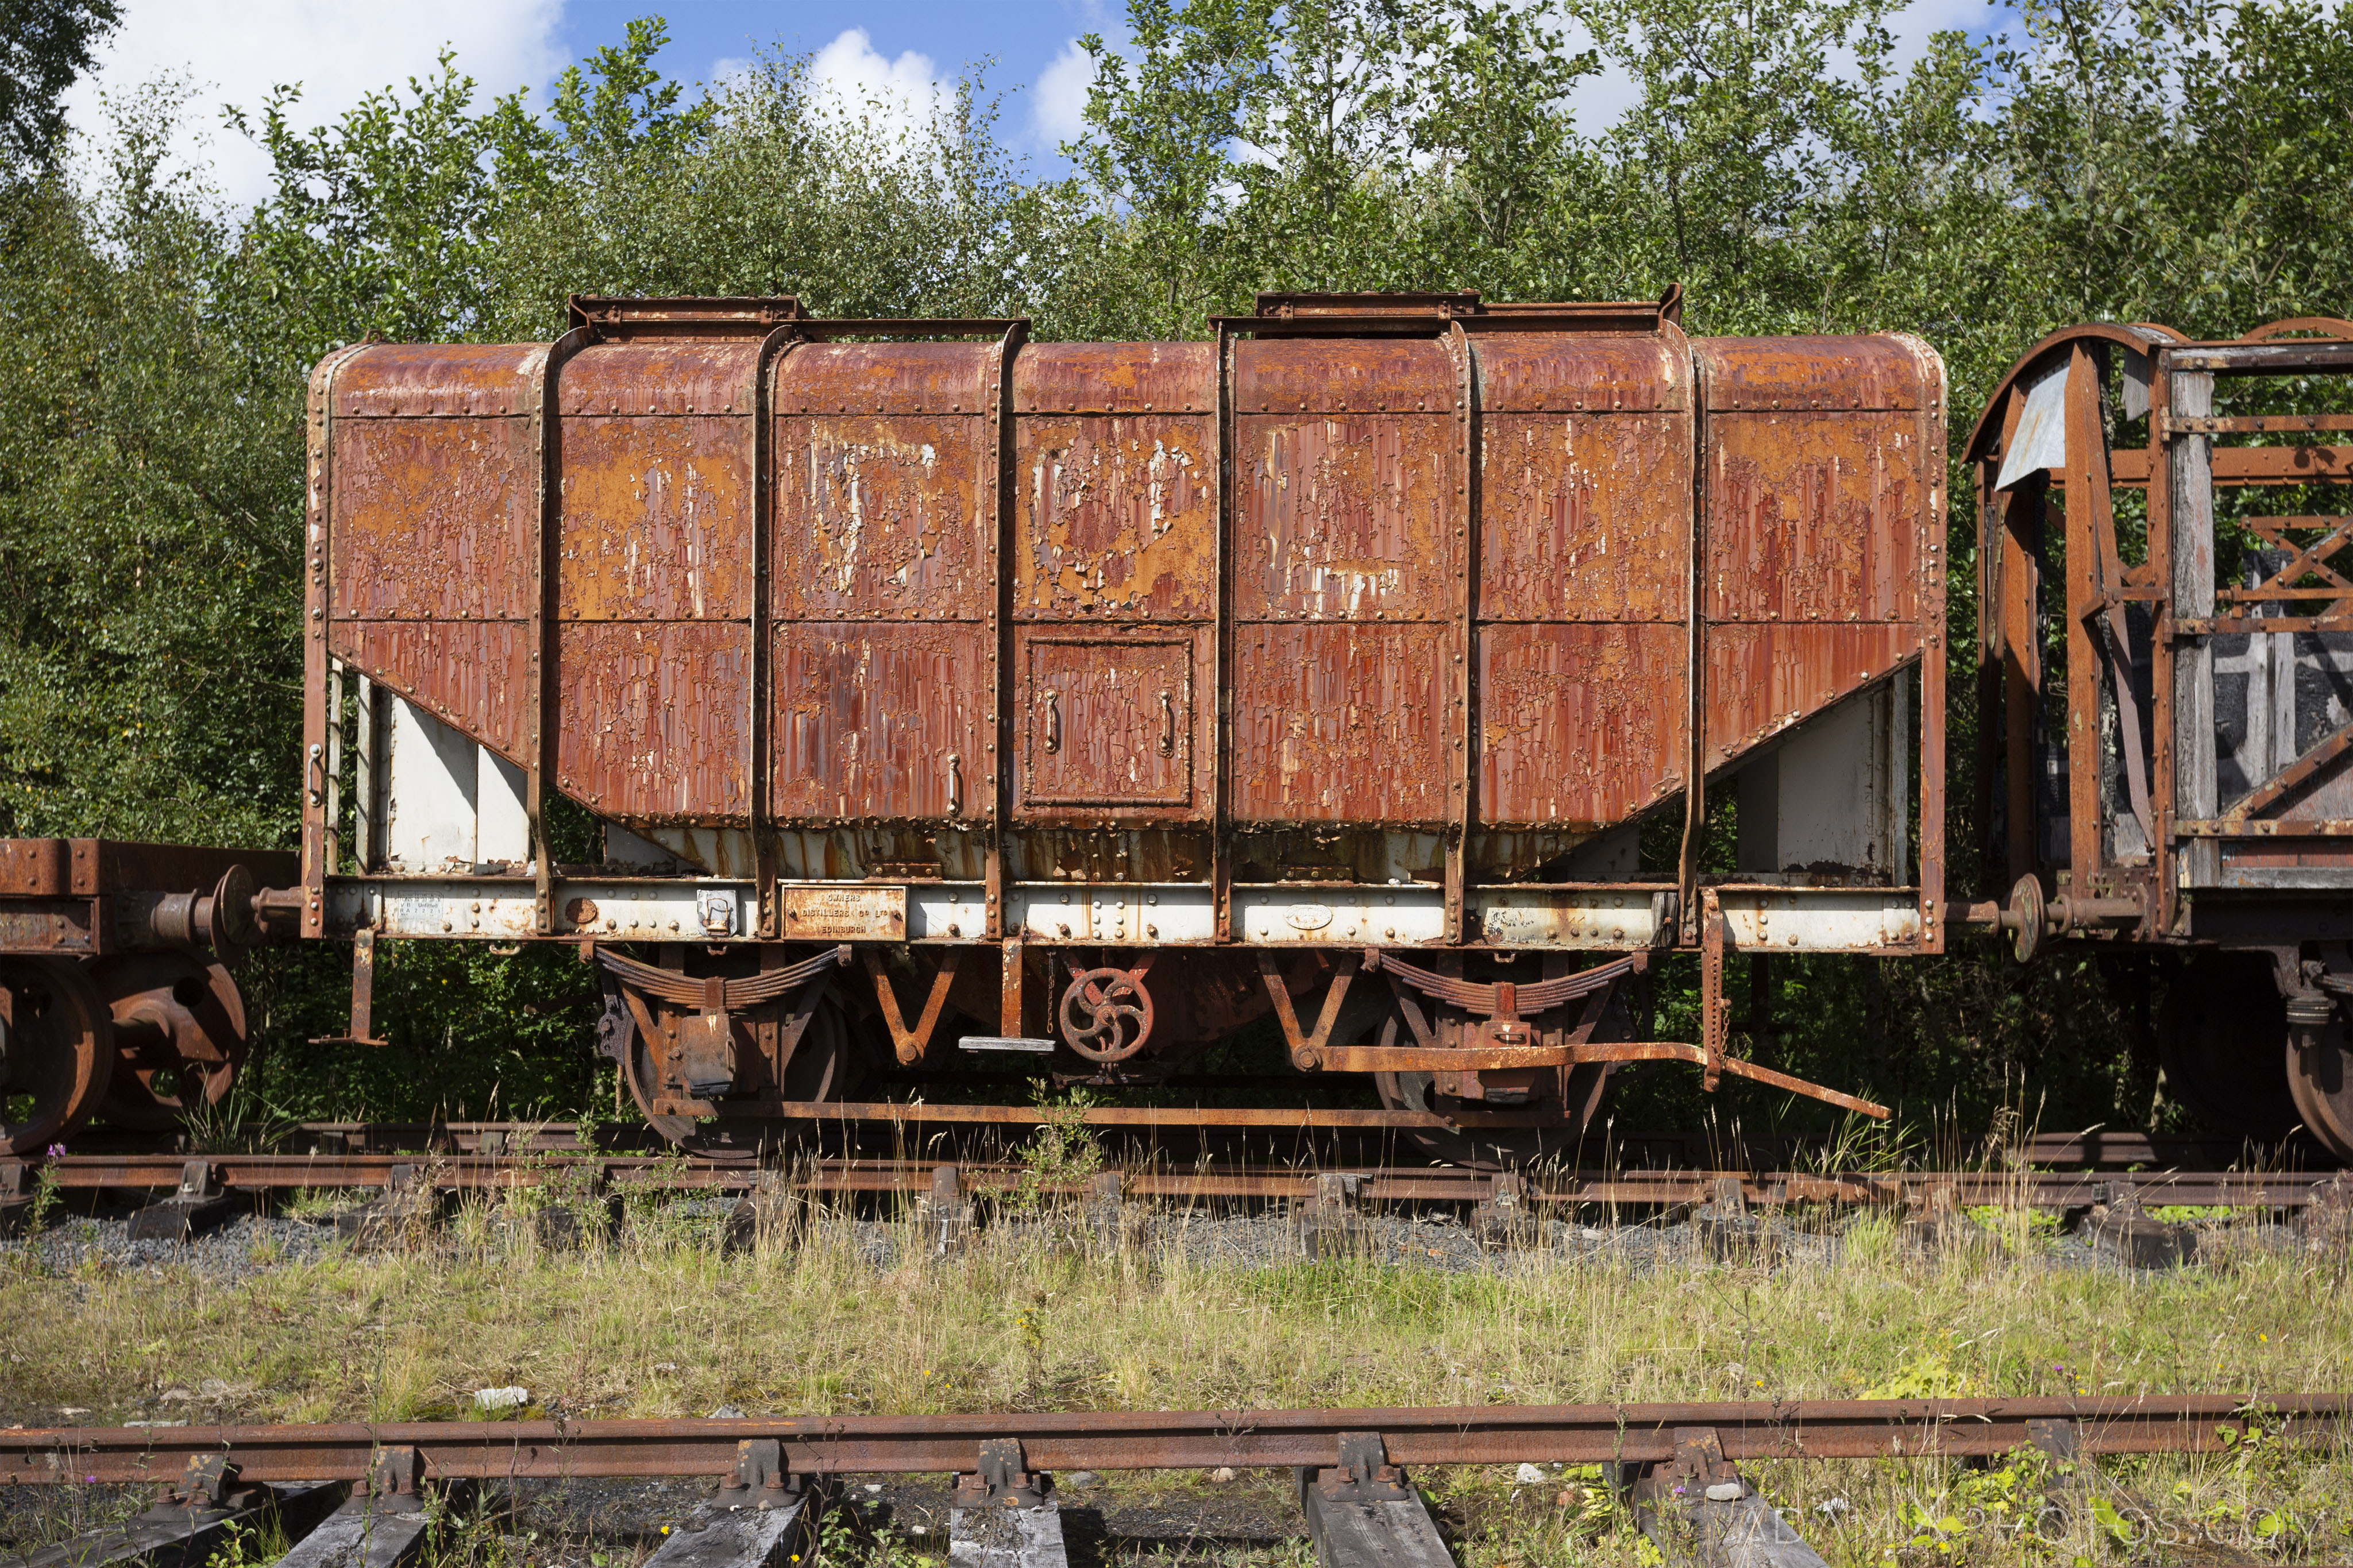 freight carriage Abandoned Trains Waterside Dunaskin Adam X Urbex Urban Exploration Access 2018 Abandoned decay lost forgotten derelict location creepy haunting eerie